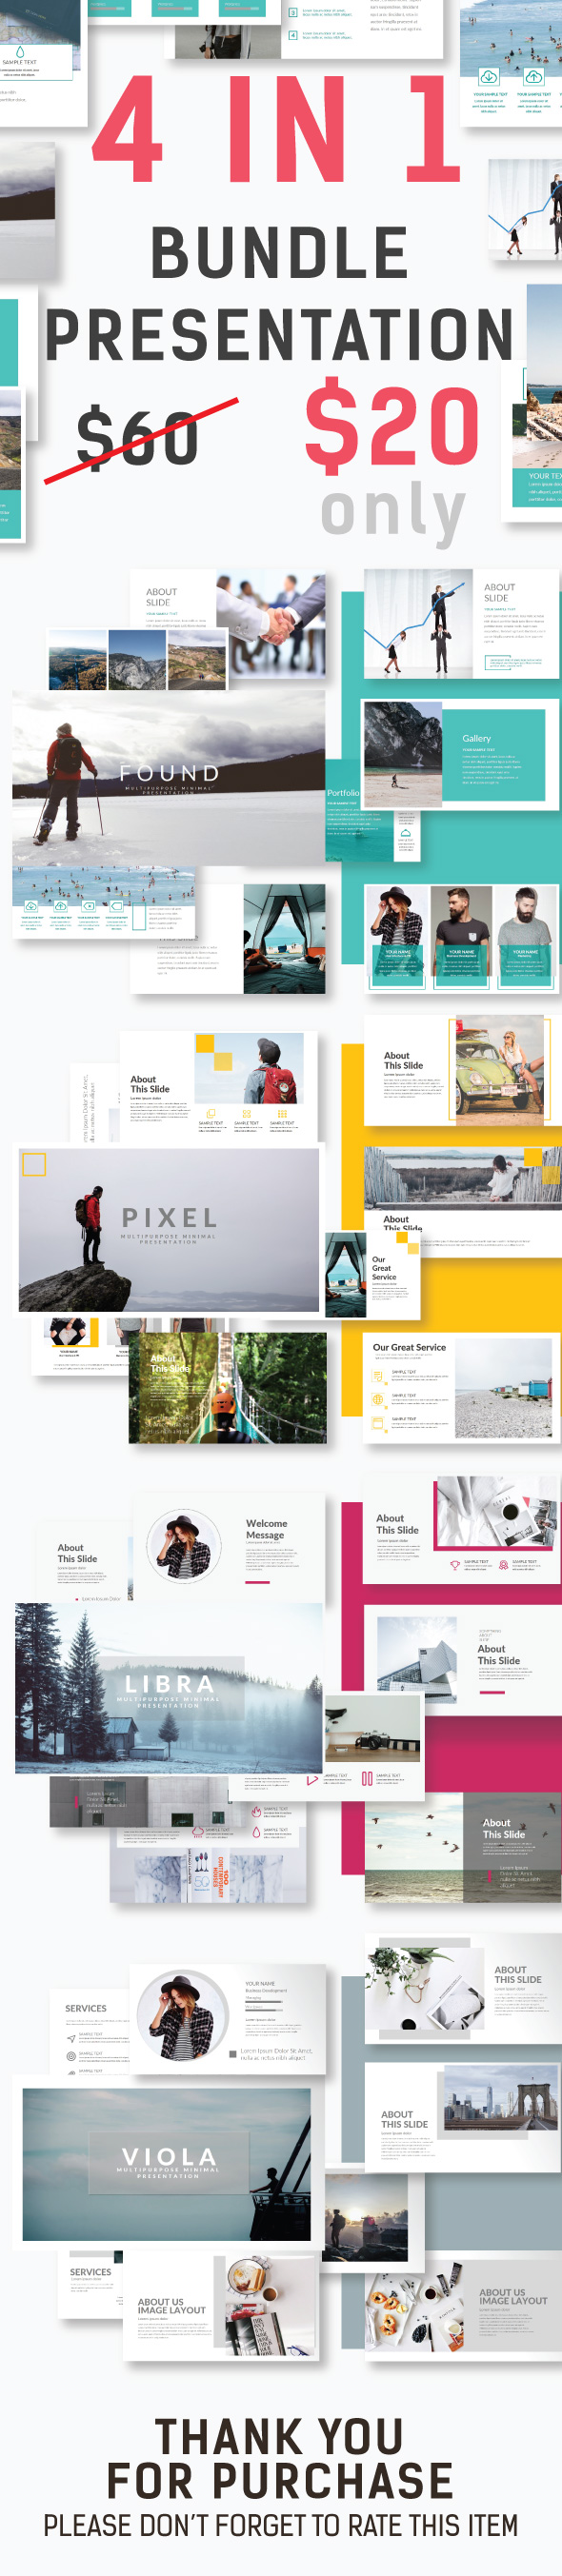 Bundle Presentation 4 in 1 - Creative PowerPoint Templates